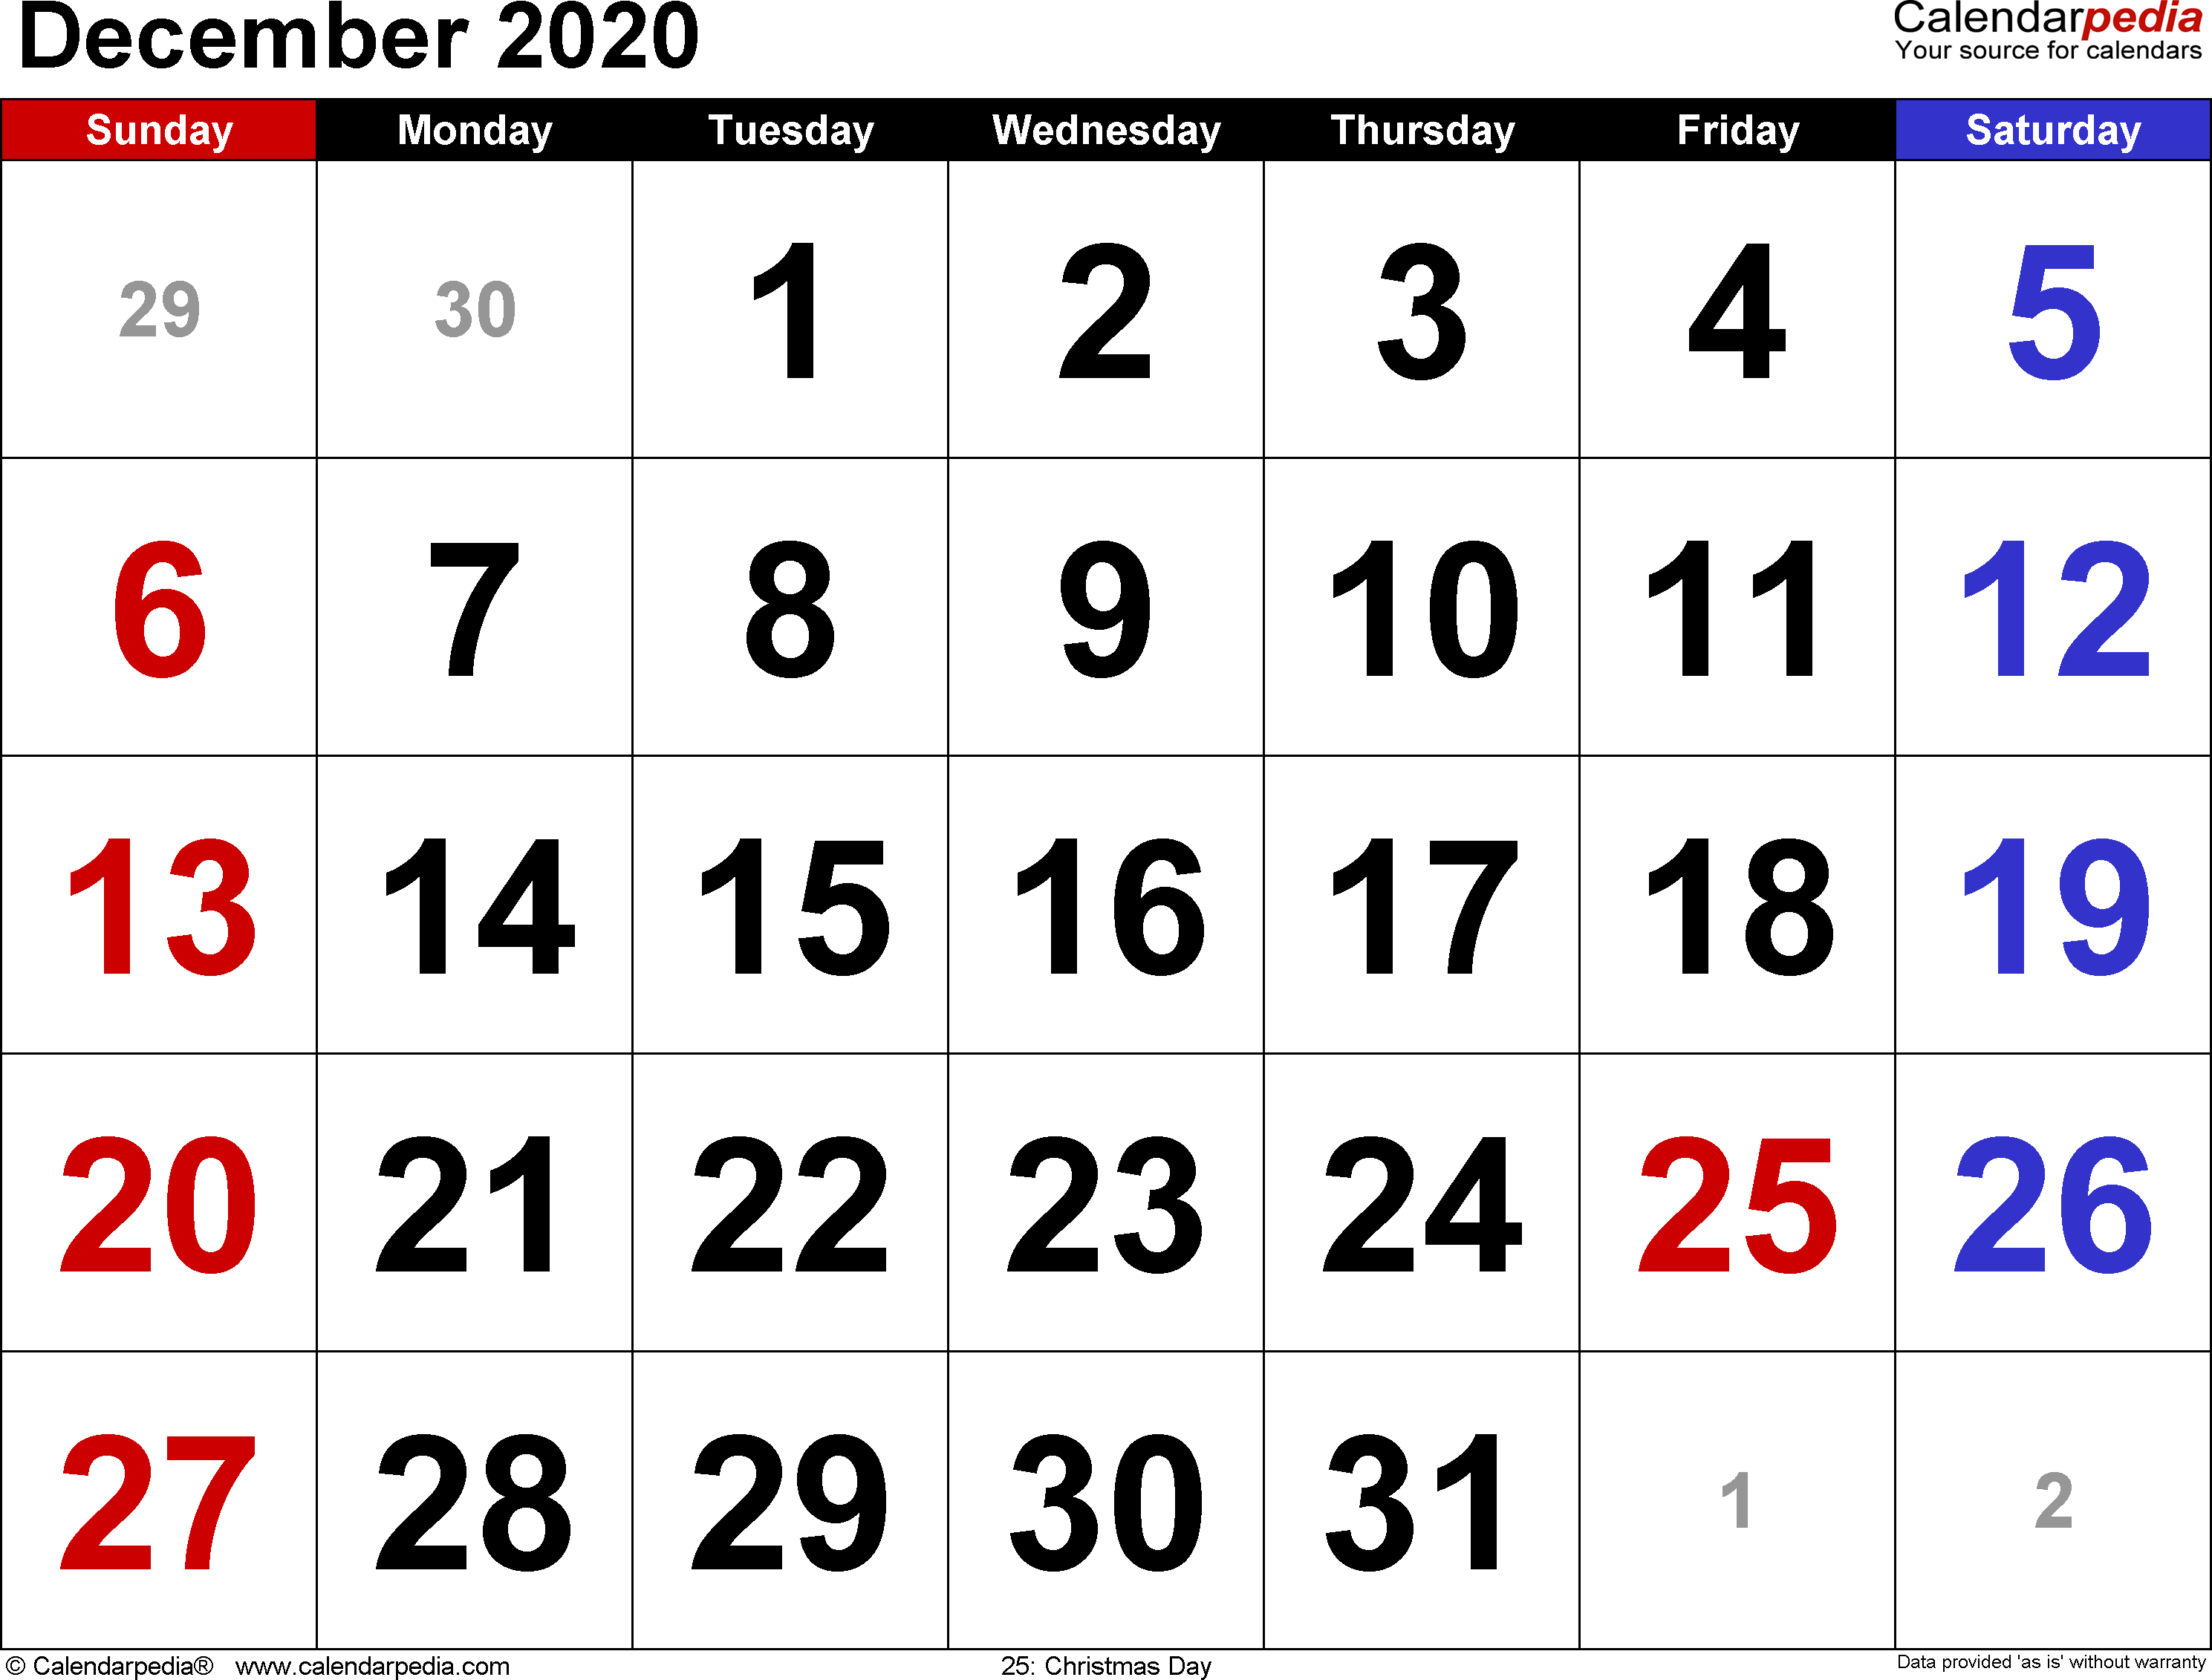 Calendar Dec 2020 December 2020 Calendars for Word, Excel & PDF